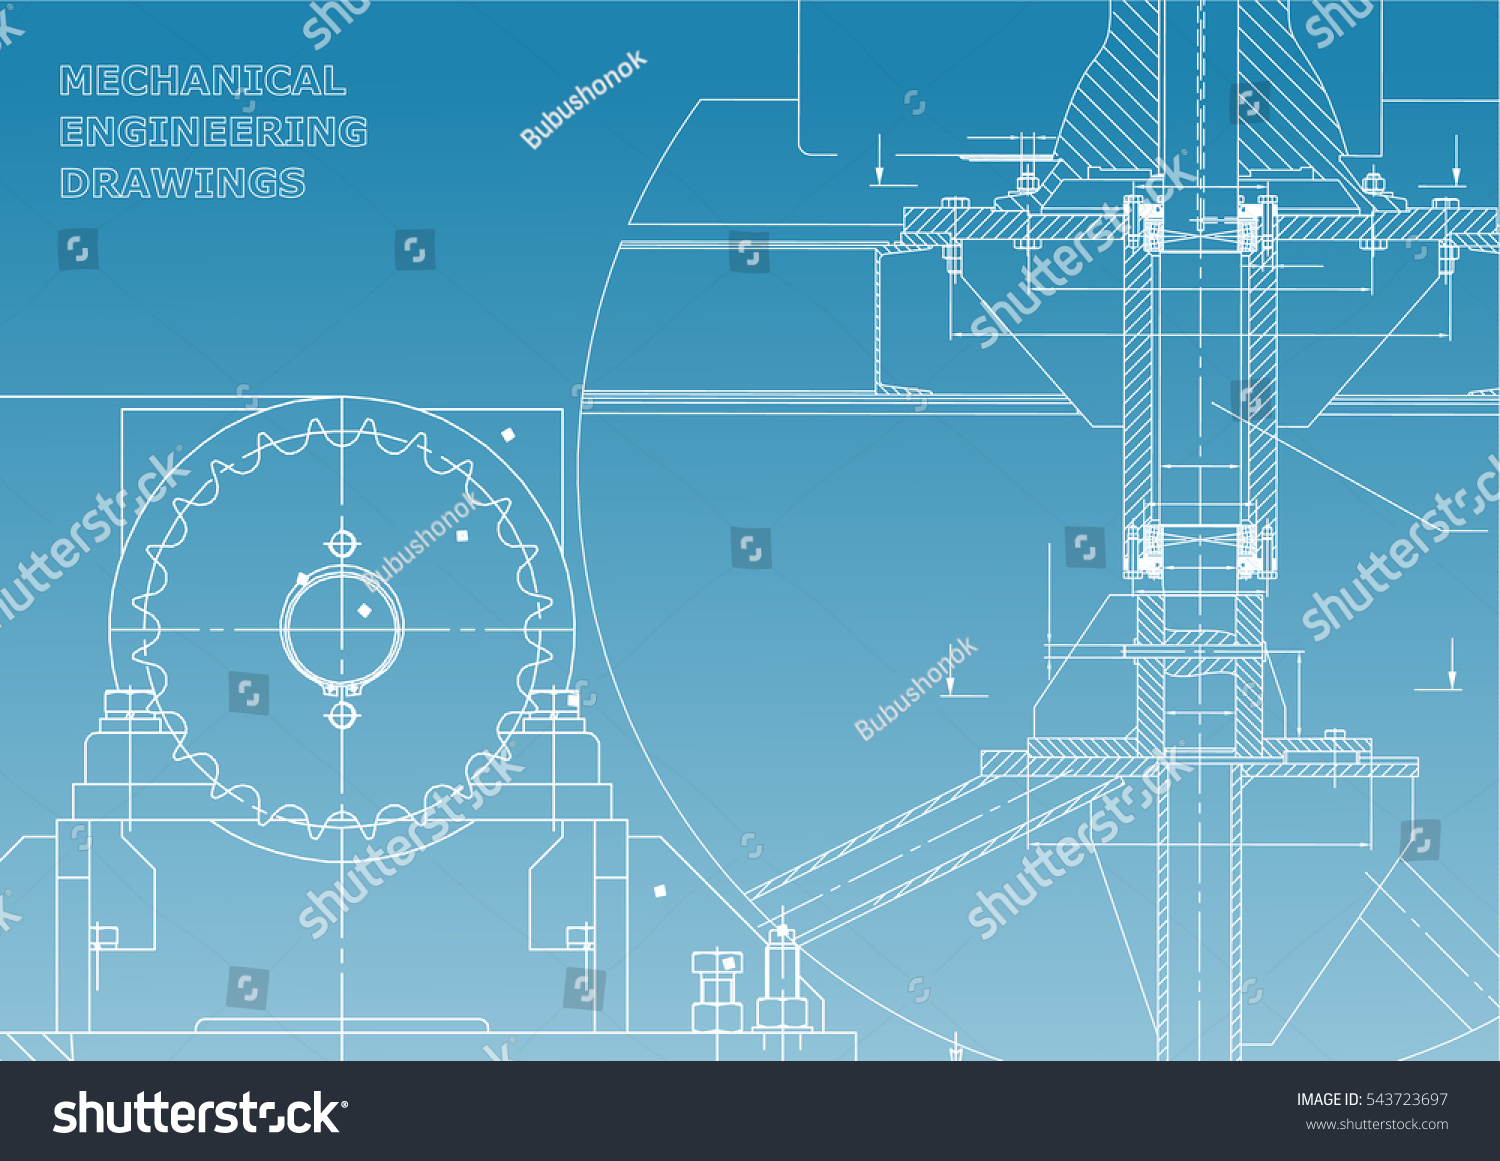 Blueprints mechanical construction engineering illustrations blueprints mechanical construction engineering illustrations technical design banner blue and white malvernweather